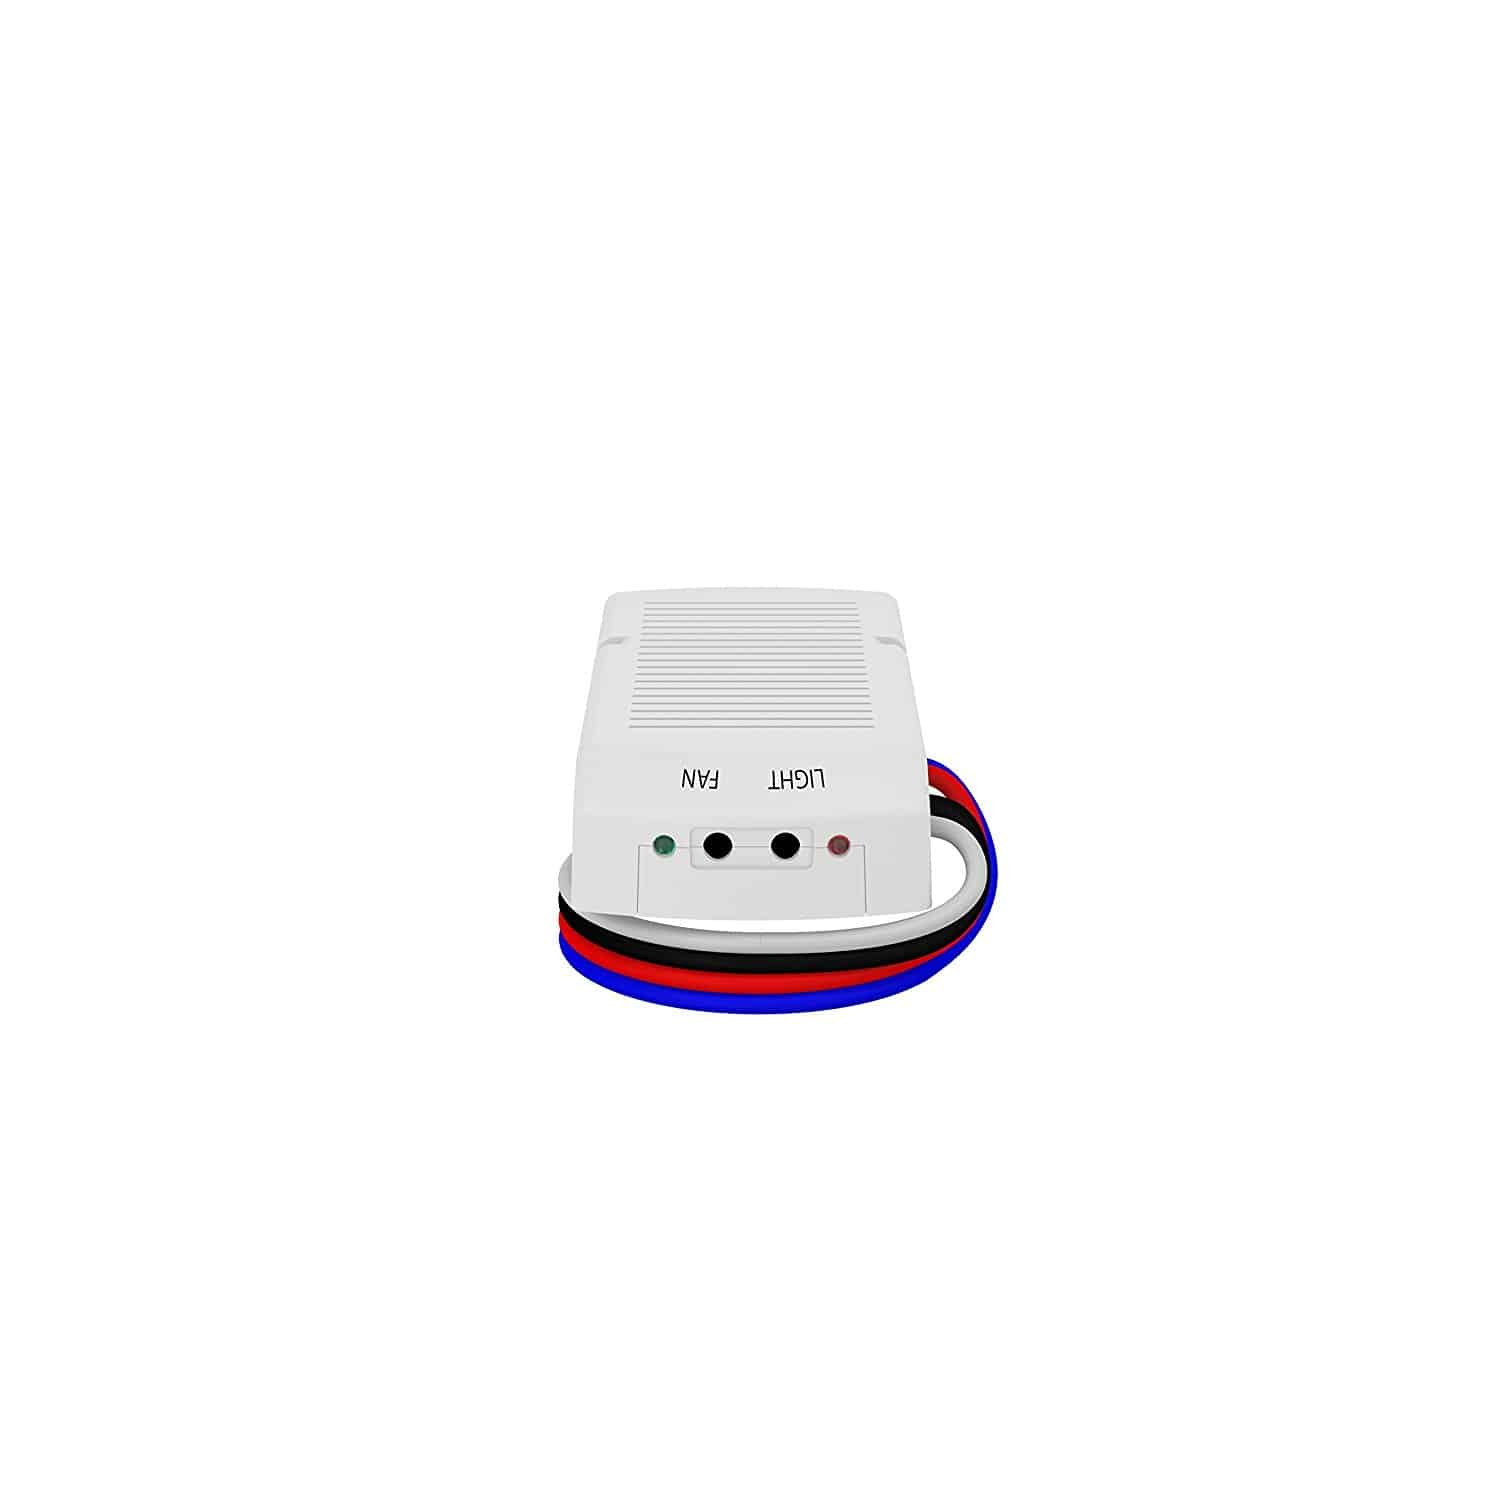 Insteon 2475f Fanlinc Ceiling Fan And Light Controller